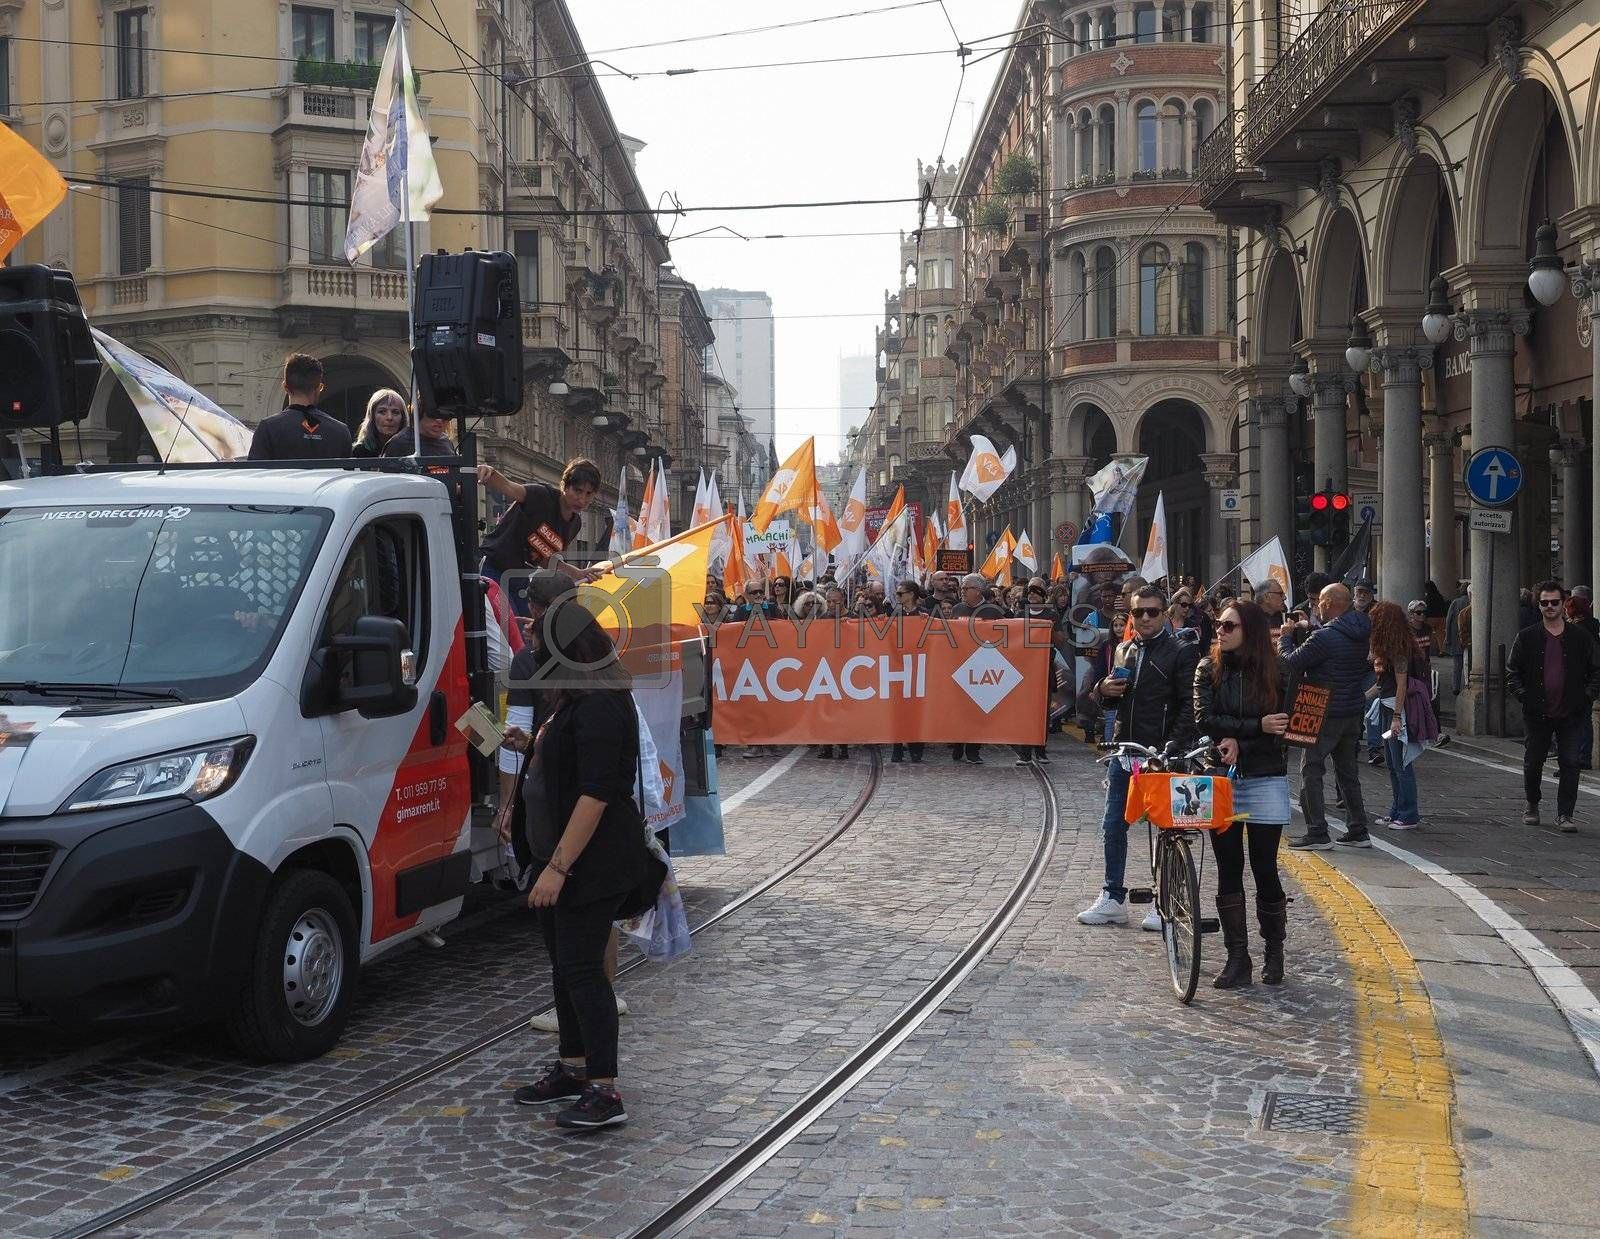 TURIN, ITALY - OCTOBER 12, 2019: LAV (Lega Anti-Vivisezione, meaning Anti-Vivisection Society) nonviolent protest rally to save macaques